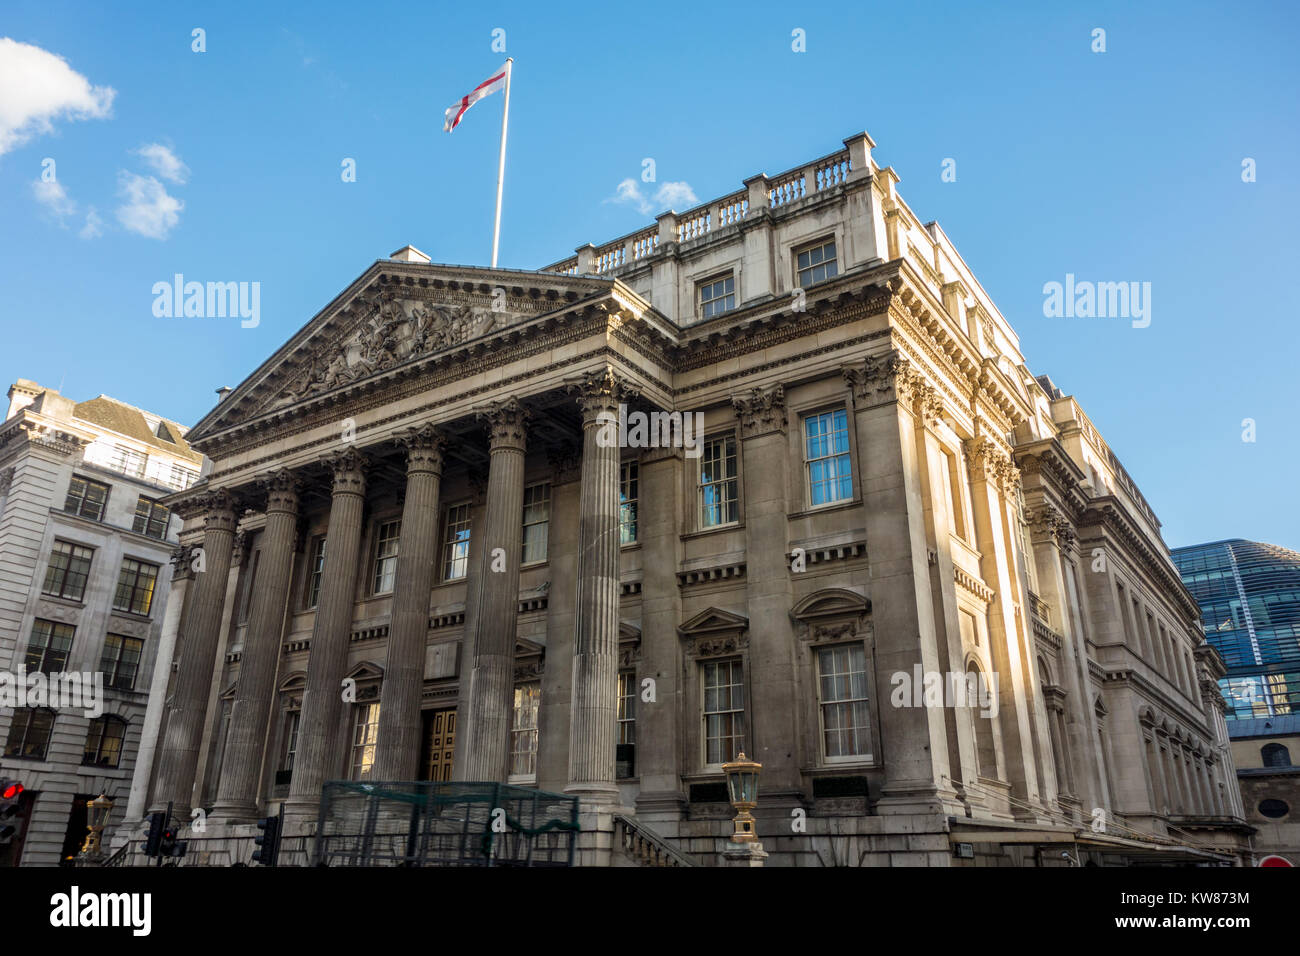 Mansion House, City of London, by George Dance the Elder, official residence of the Lord Mayor of London. - Stock Image